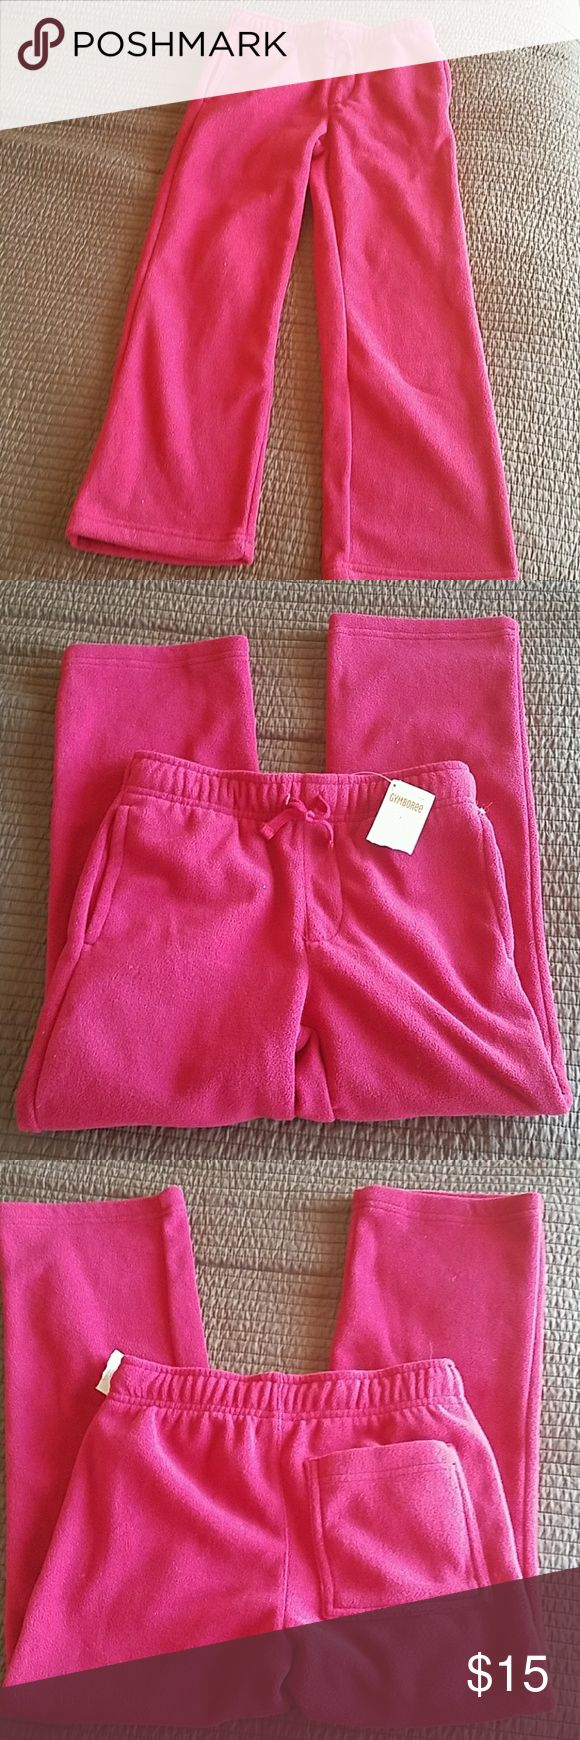 Gymboree red fleece pants sz 7 boys NWT New with tags.  Gymboree fleece pants.  Hip pickets, one back pocket, eladtic waist, straight legs.  New with tags.  Purchased in boys but deep red and styling is pretty unisex.  Smoke free / pet free home. Gymboree Bottoms Sweatpants & Joggers